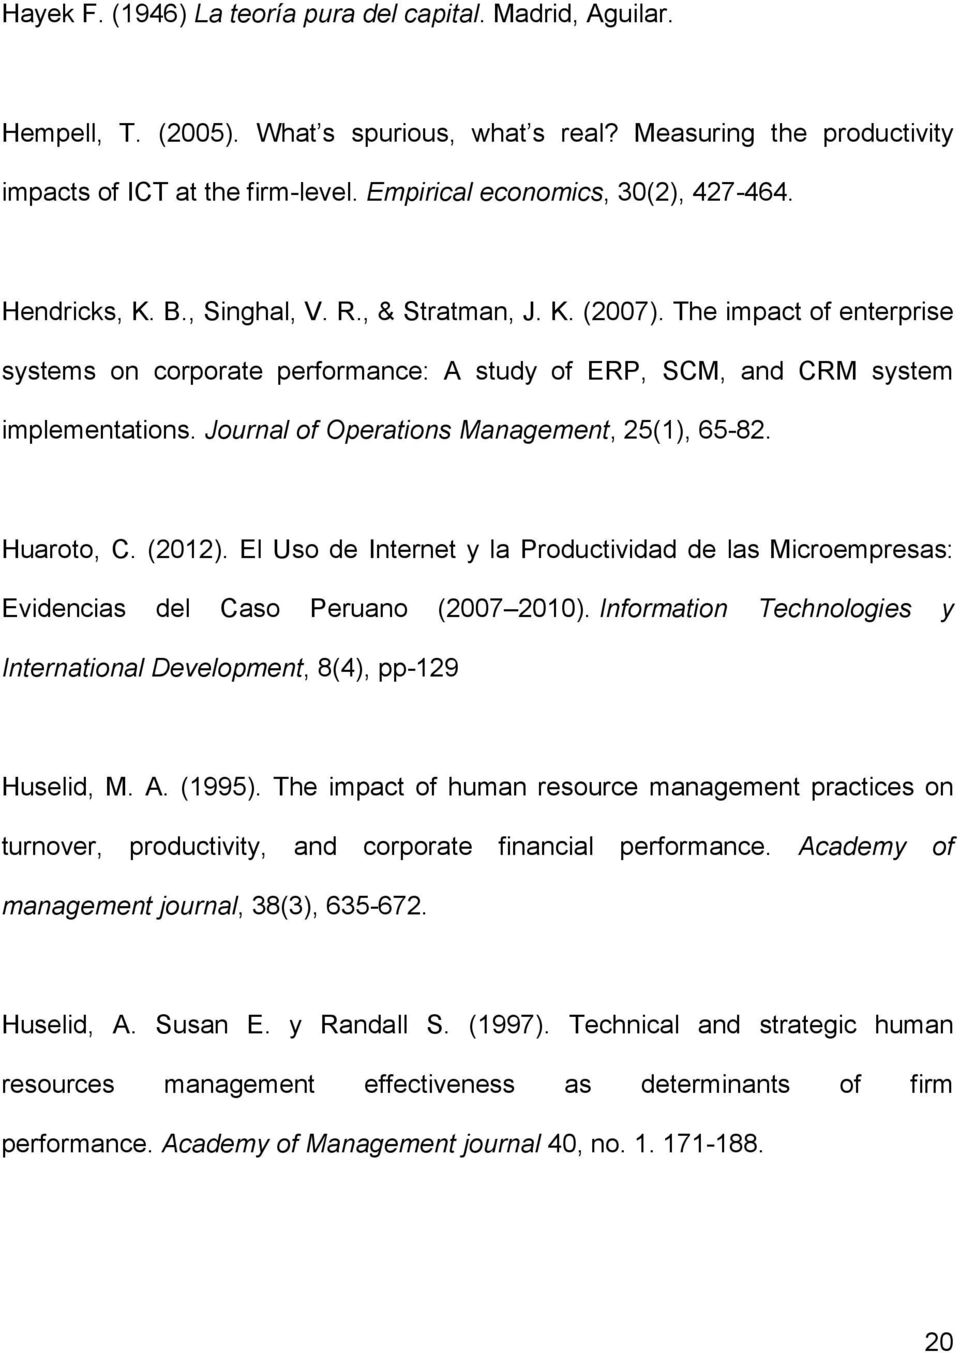 The impact of enterprise systems on corporate performance: A study of ERP, SCM, and CRM system implementations. Journal of Operations Management, 25(1), 65-82. Huaroto, C. (2012).